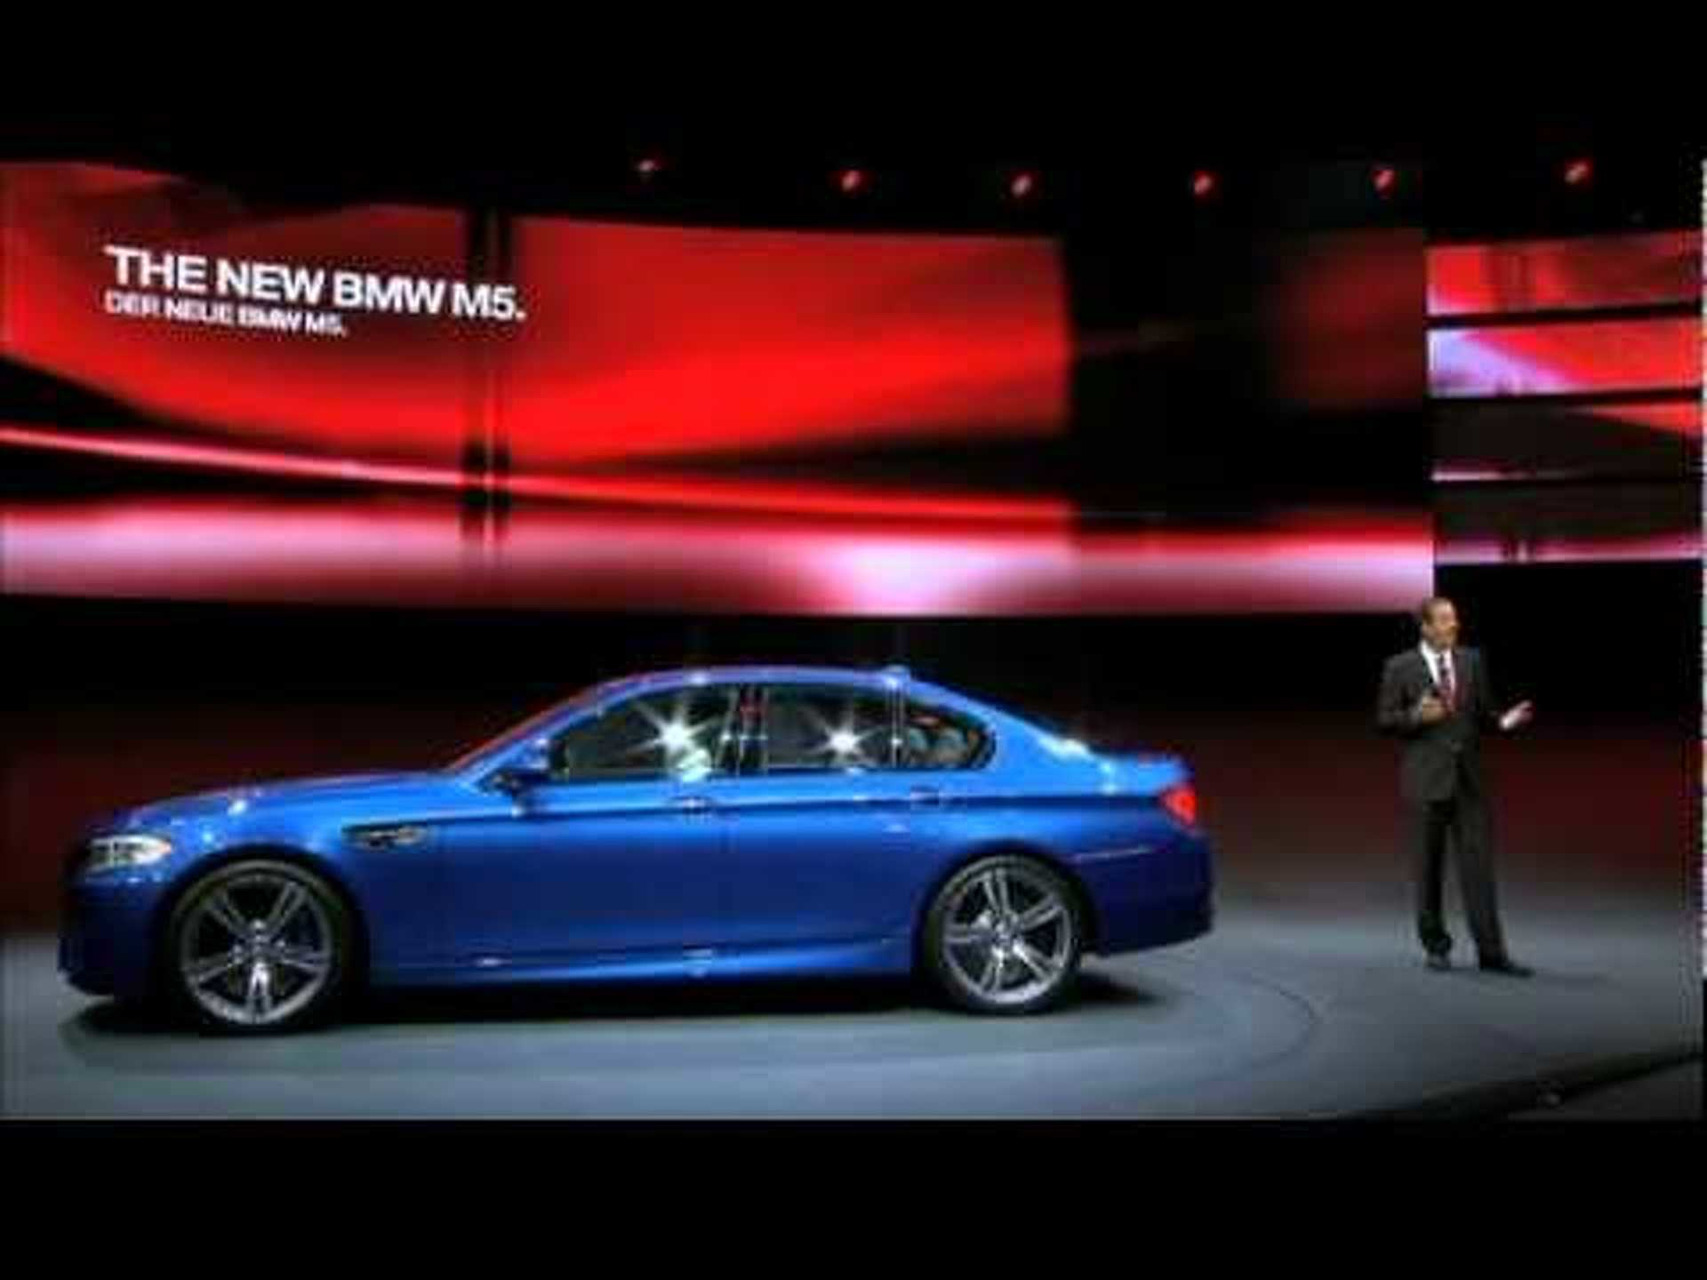 2012 BMW M5 - 2011 Frankfurt Motor Show Video